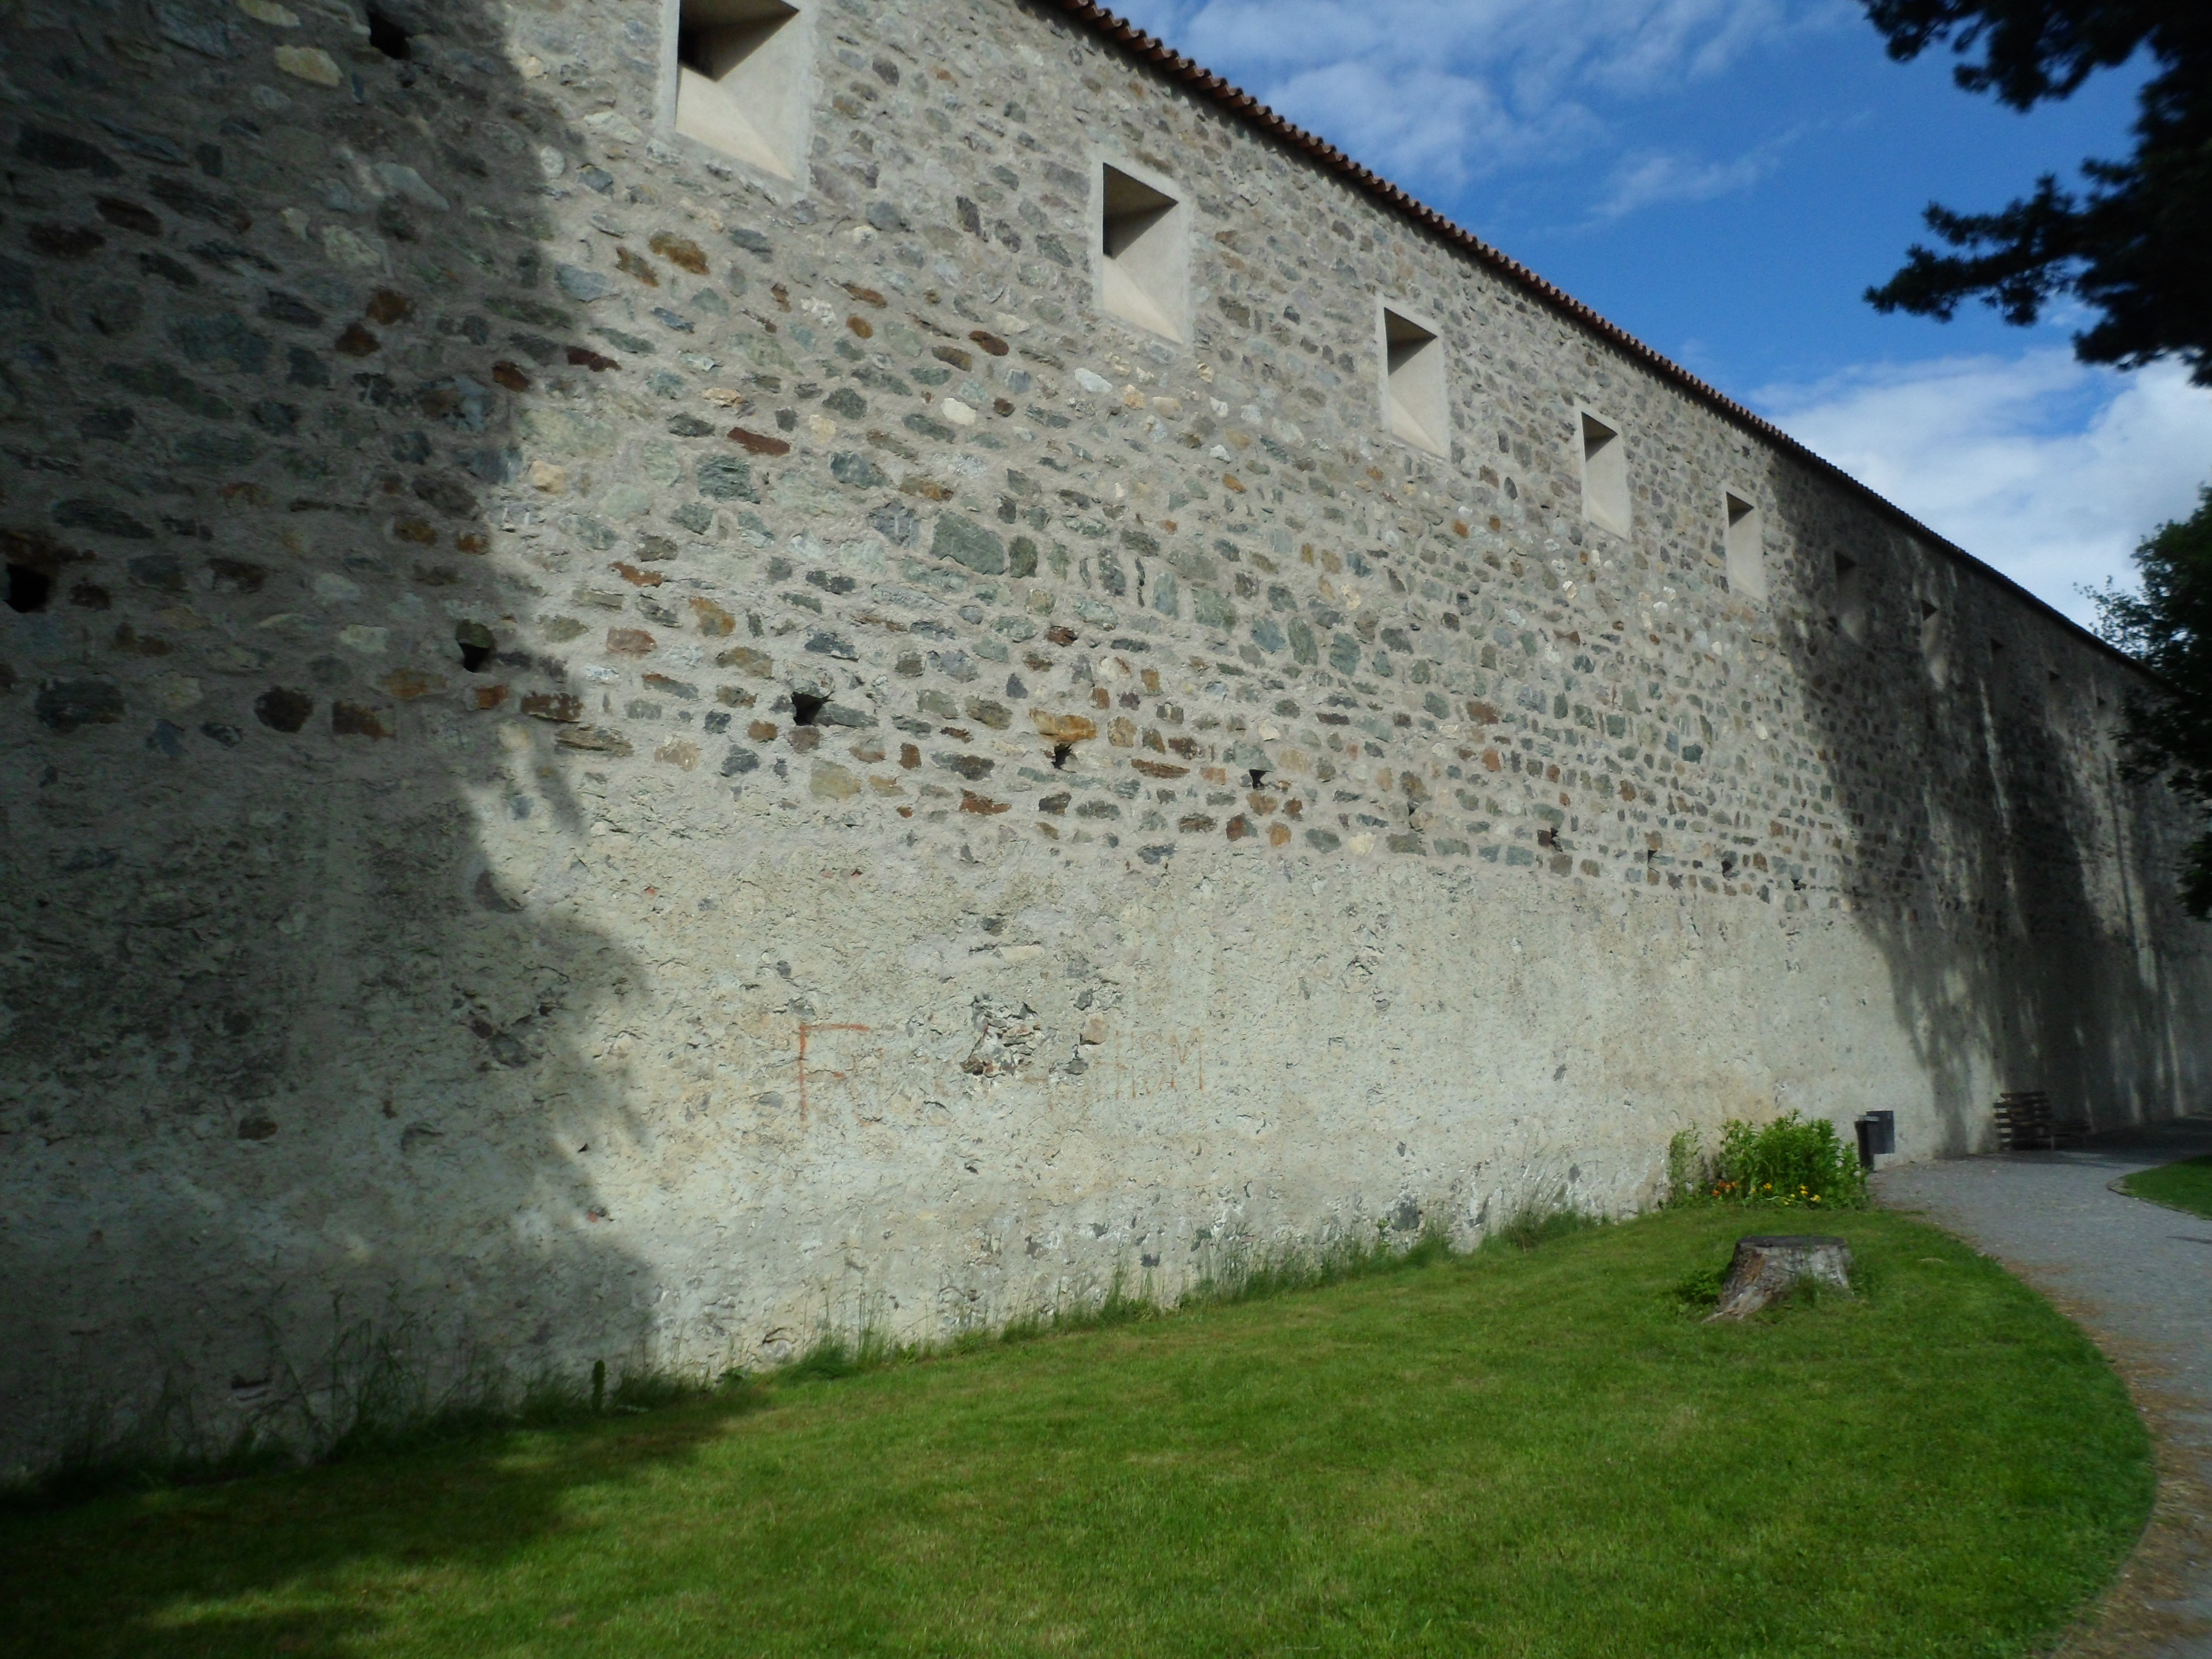 Photo of a mortared stone wall with square loopholes along the top